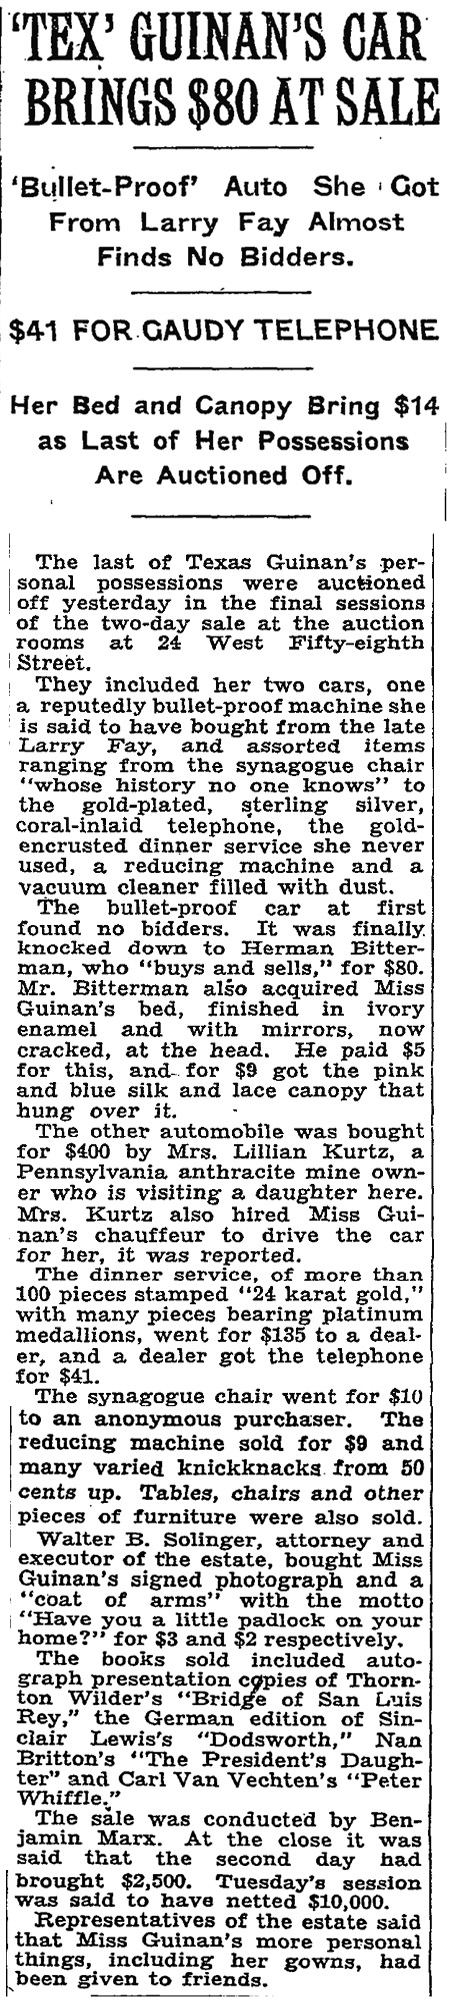 12/21/33 NYTimes